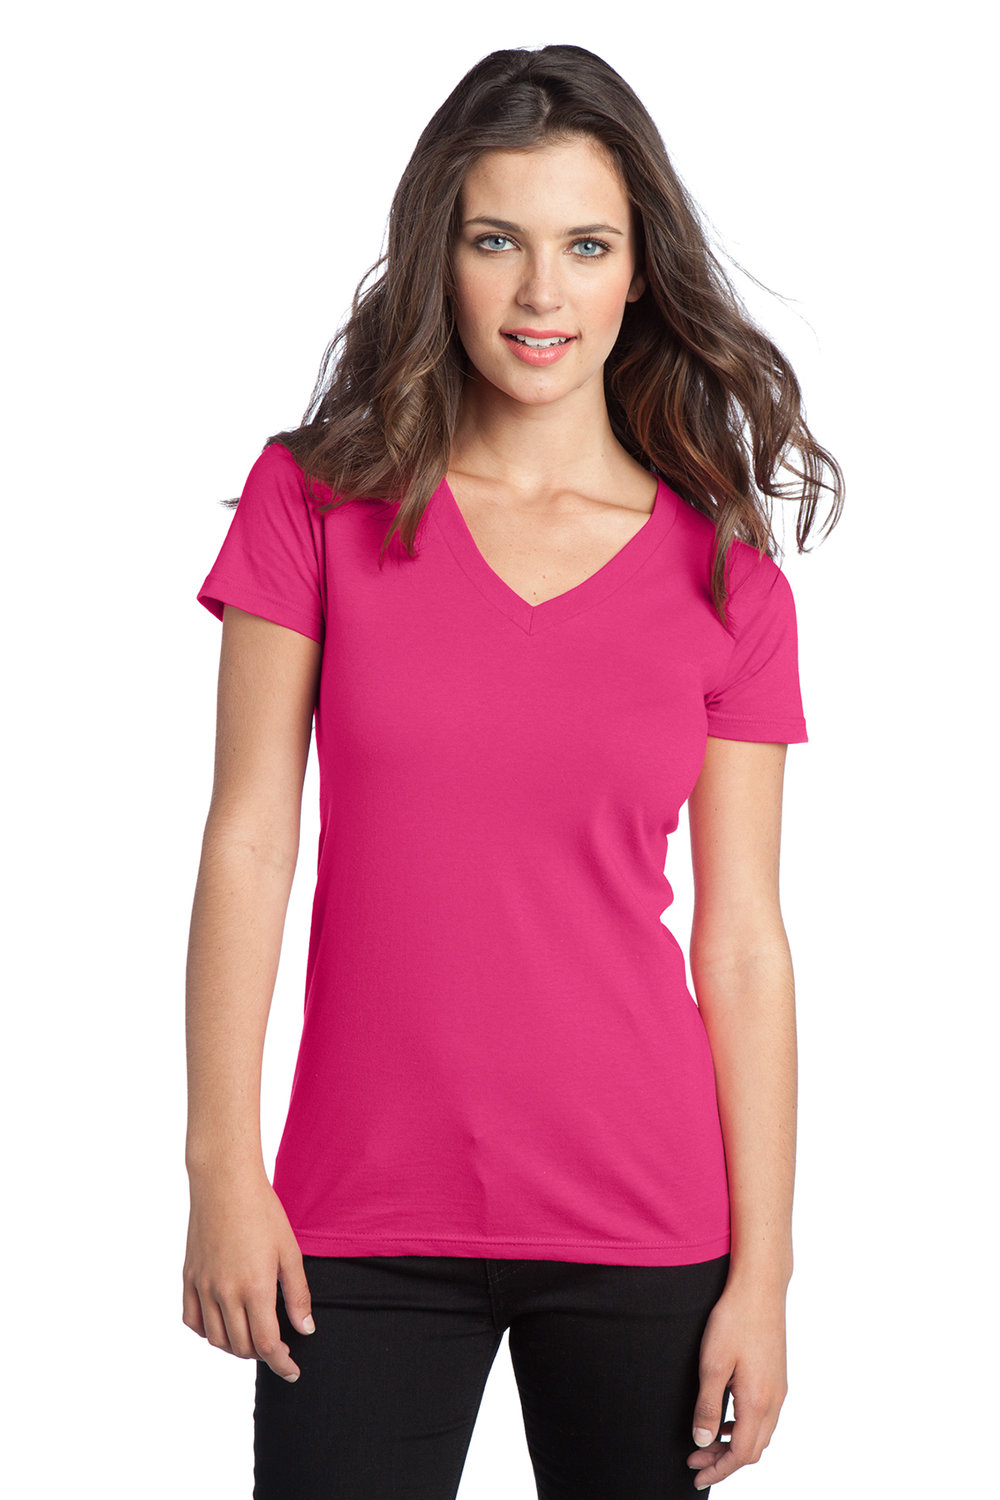 Women's V-Neck Shirt  - Fuchsia Pink (shown), Royal Blue, Charcoal, Heather Gray, White, Black | $10